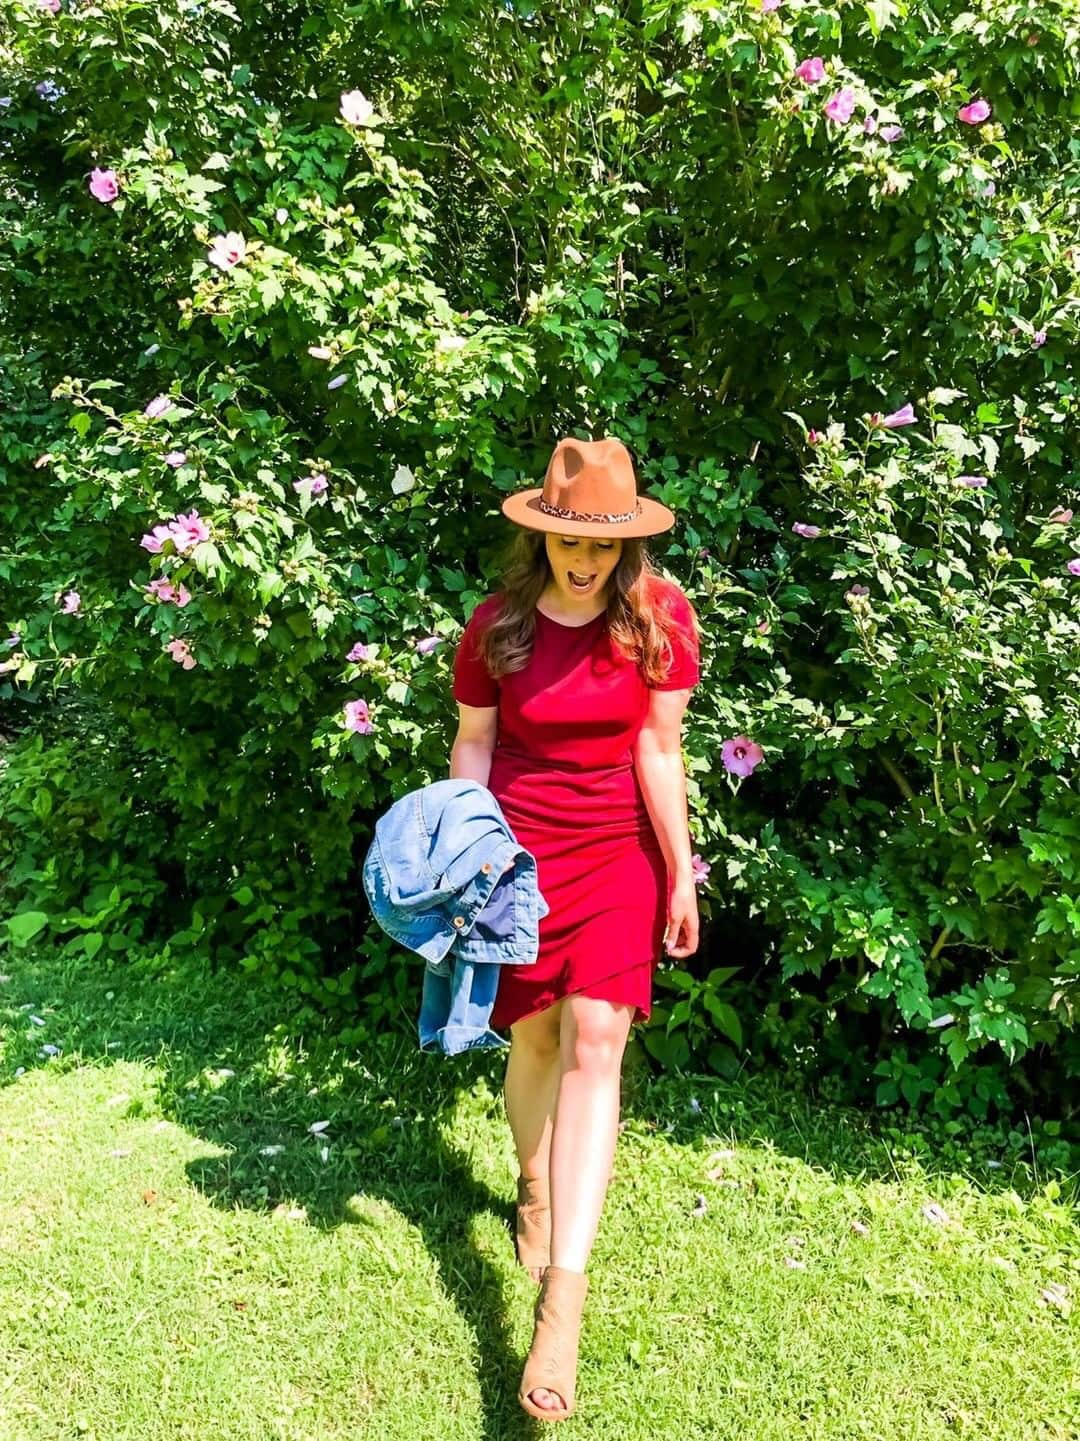 The viral BTFBM dress as seen on style blogger @tay.andco! Love her pairing of this Amazon t-shirt dress with fedora hat and stylish booties. Do we like?